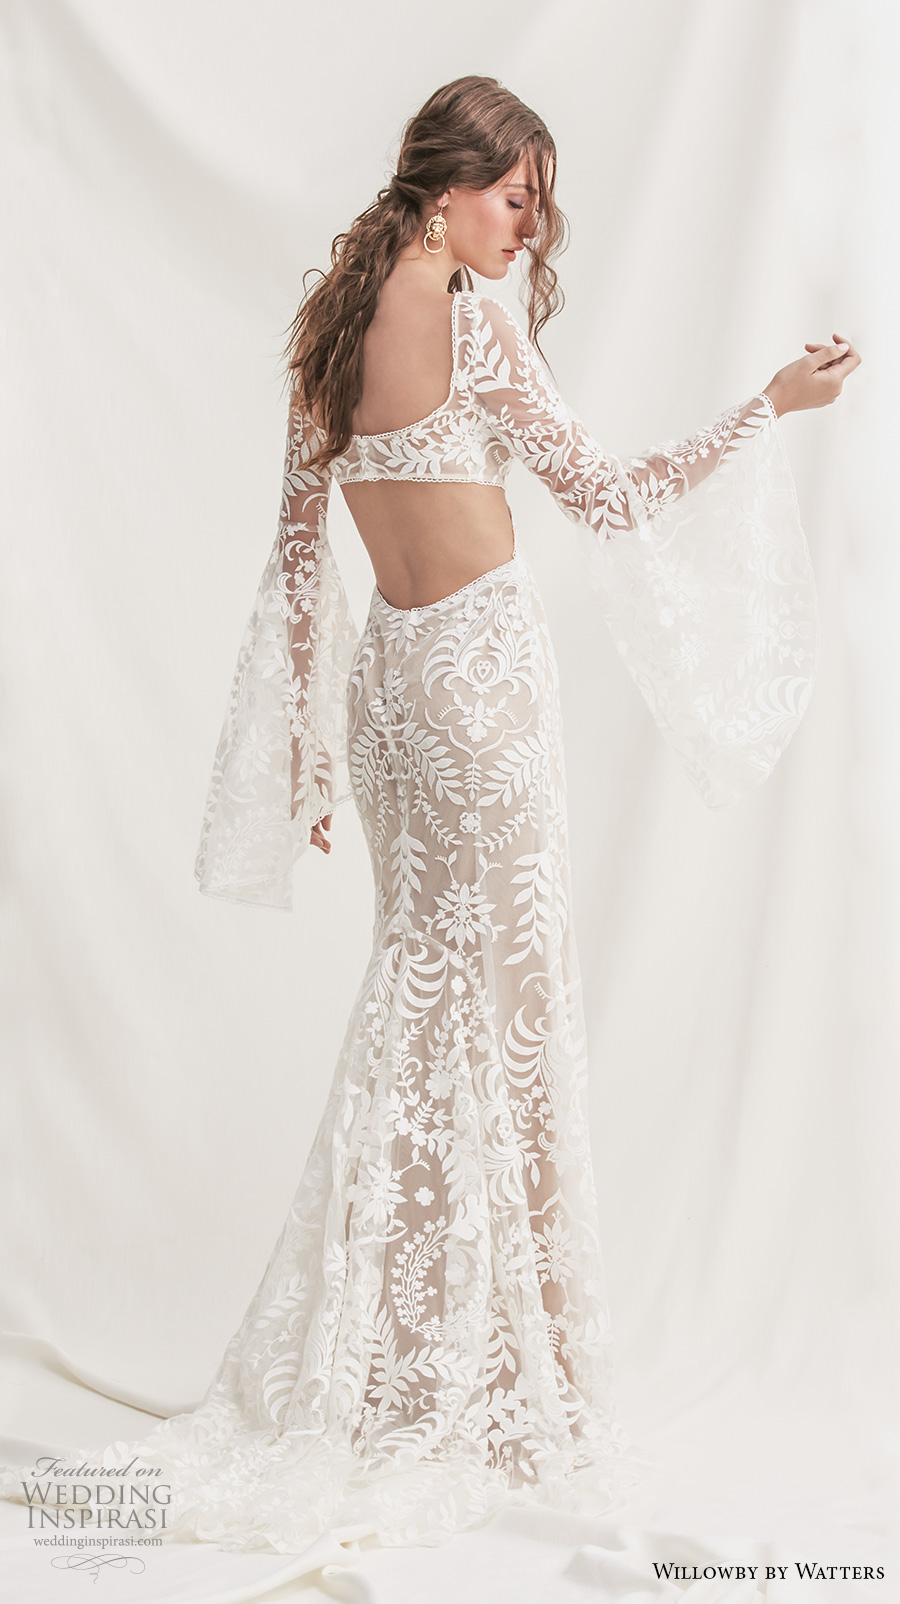 willowby by watters spring 2019 bridal long bell sleeves square neckline full embellishment bohemian elegant sheath wedding dress keyhole back sweep train (6) bv